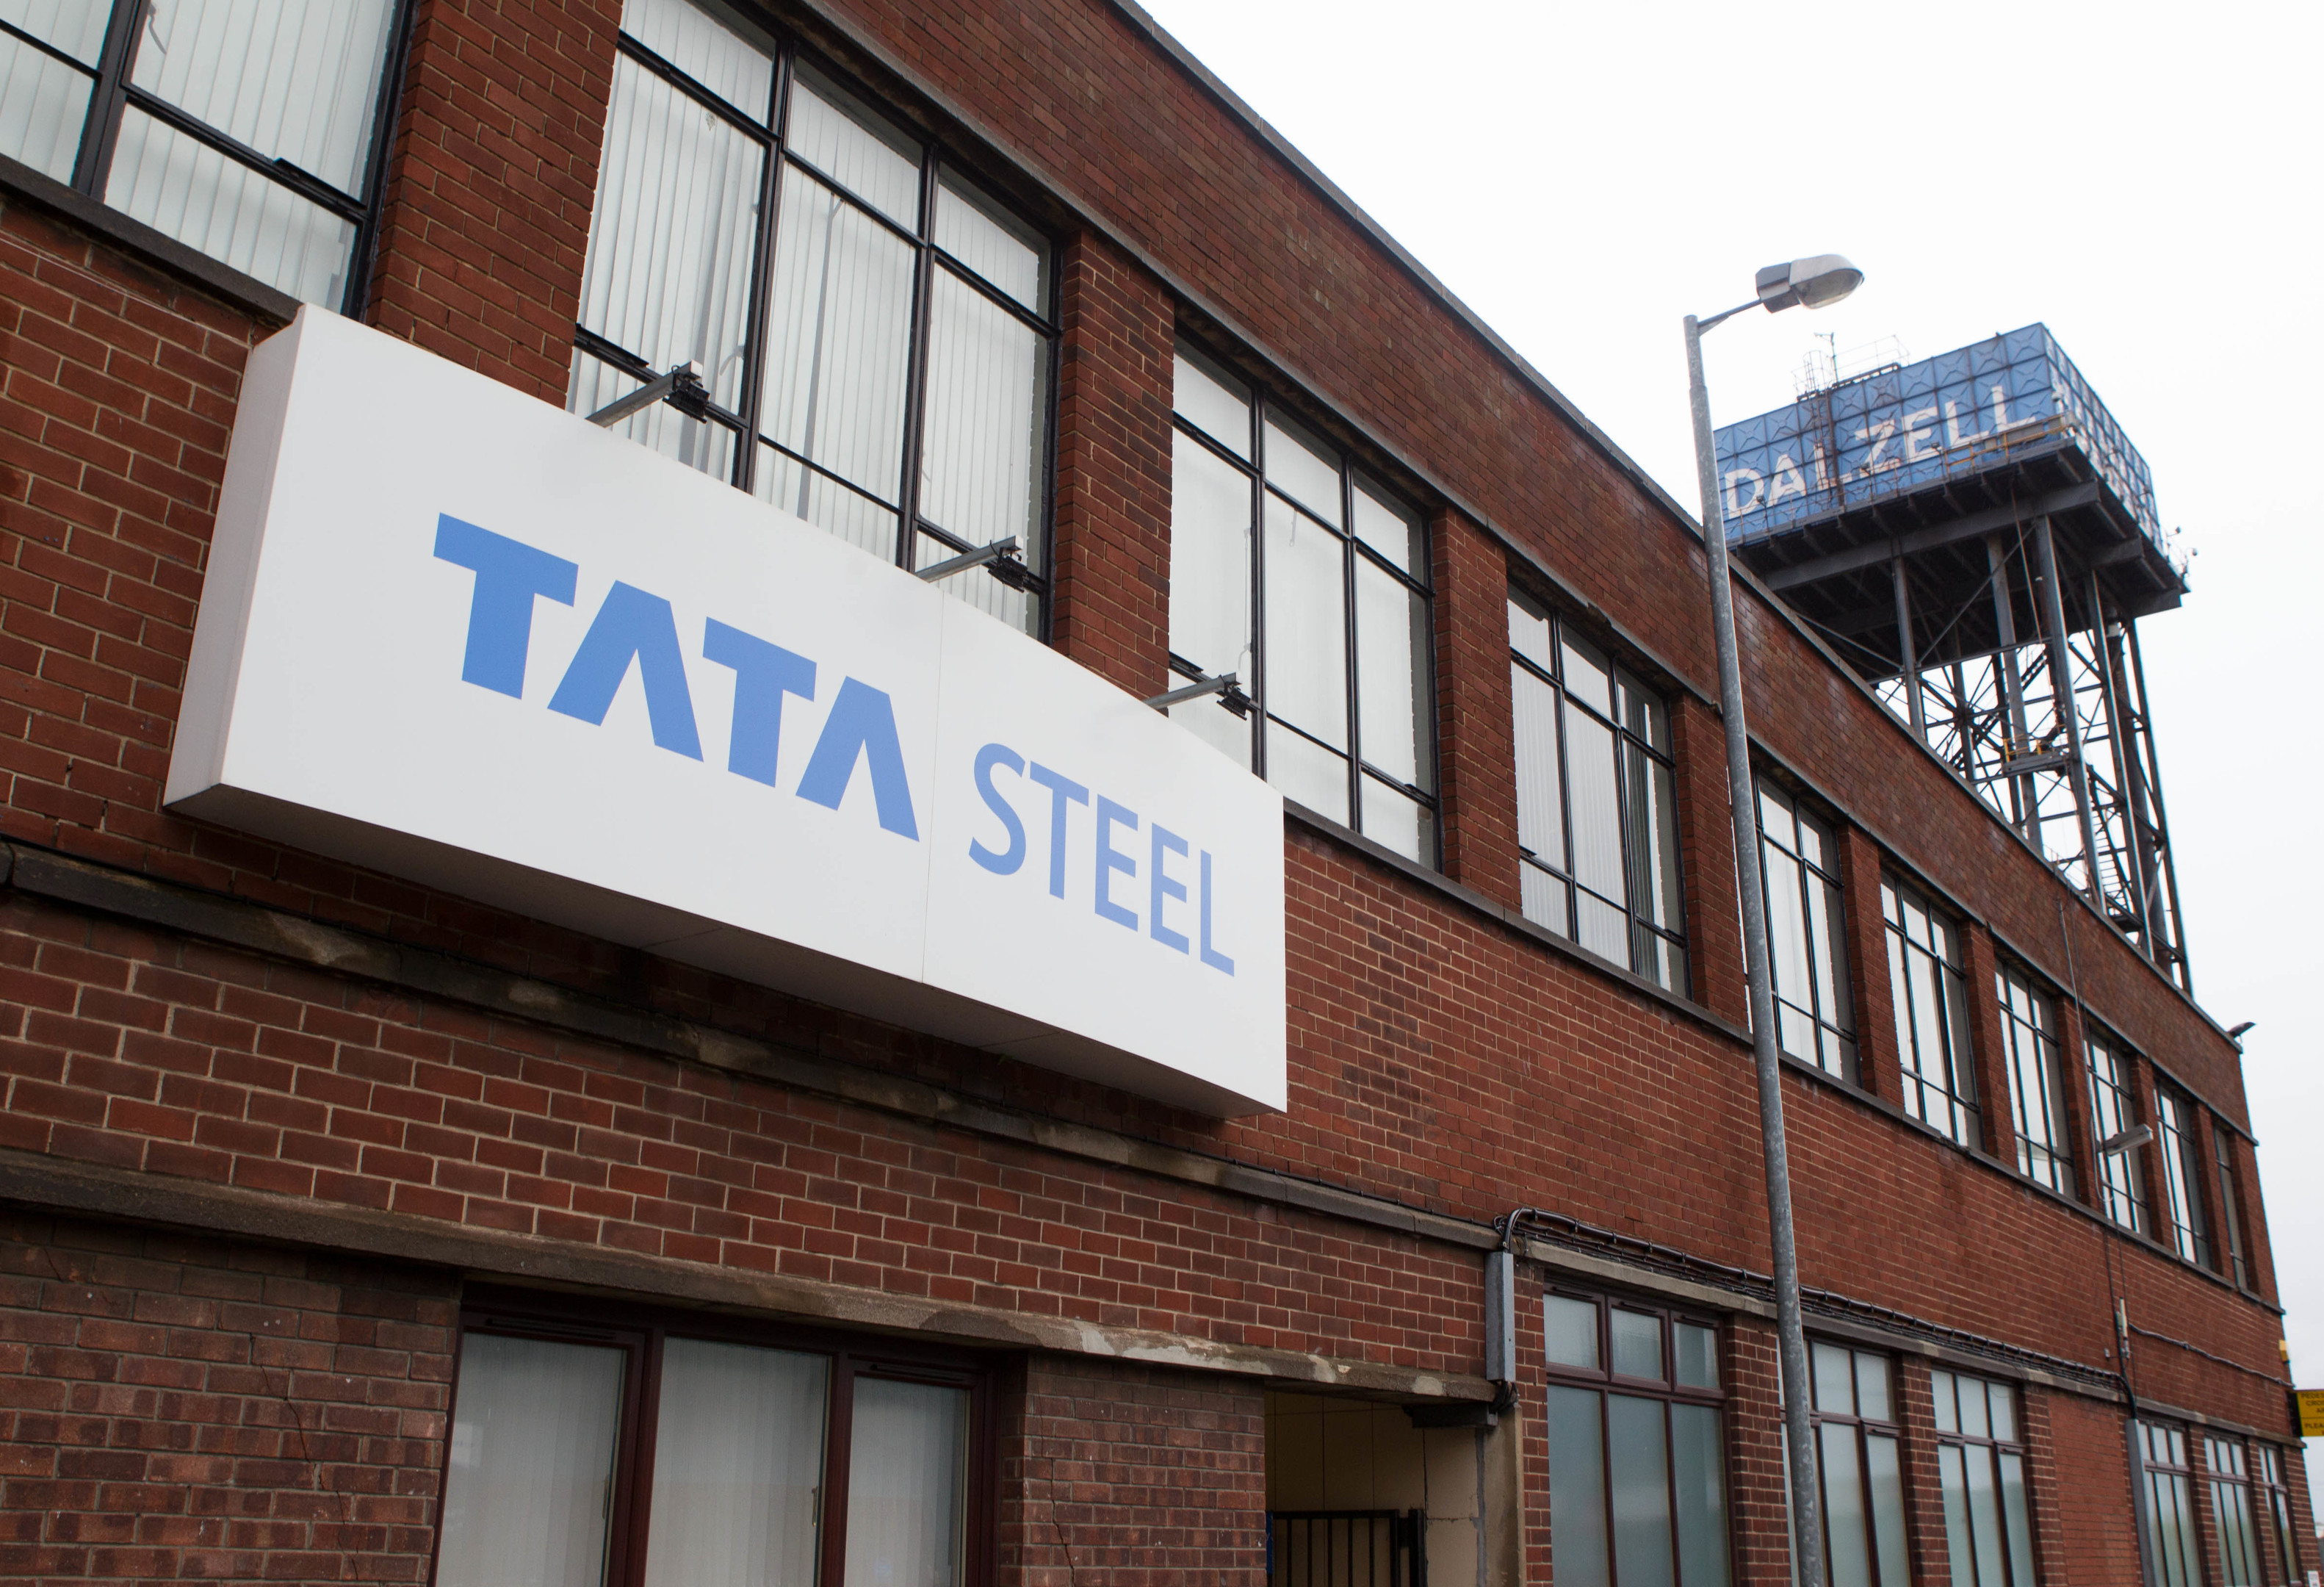 Tata steelworks, Motherwell (Chris Austin / DC Thomson)